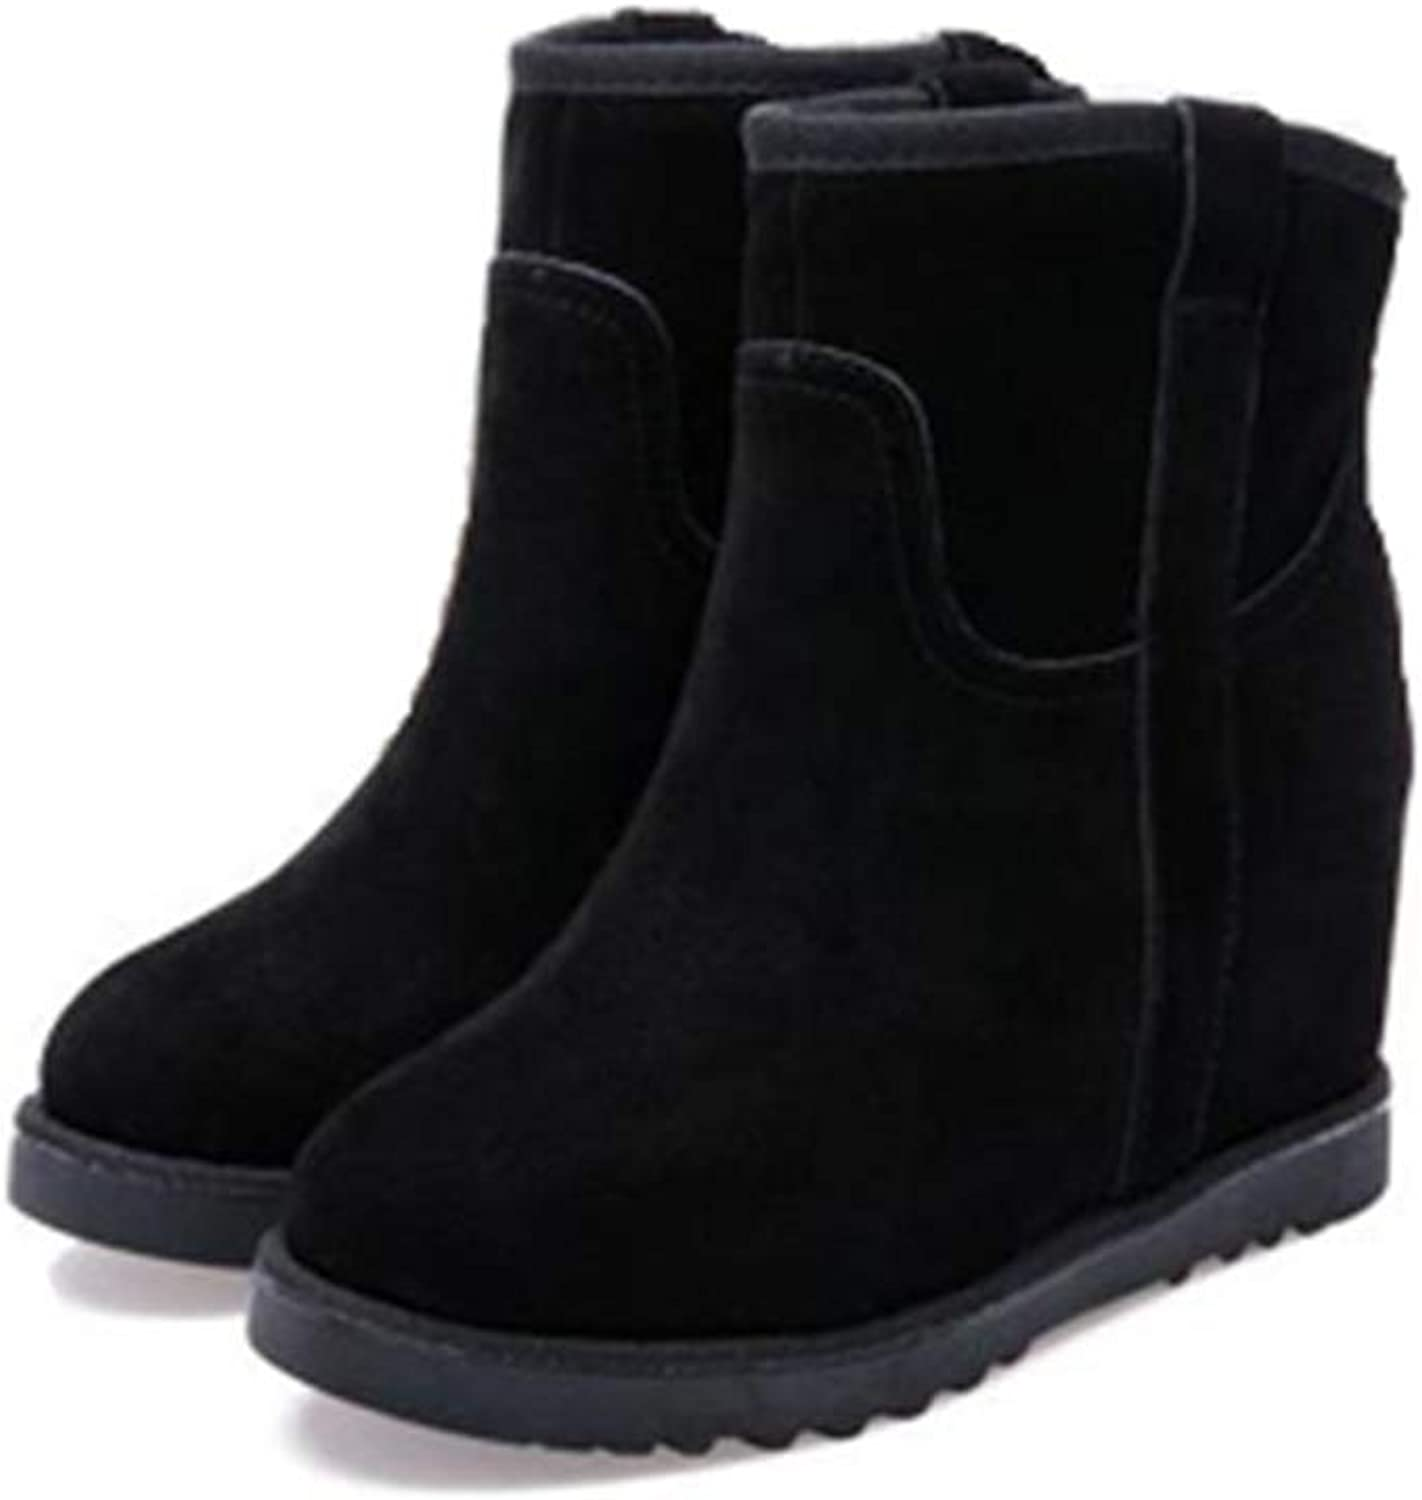 Winter Warm Slope with Increasing Snow Boots Woman Short Boots Women's Short Barrel Matte shoes